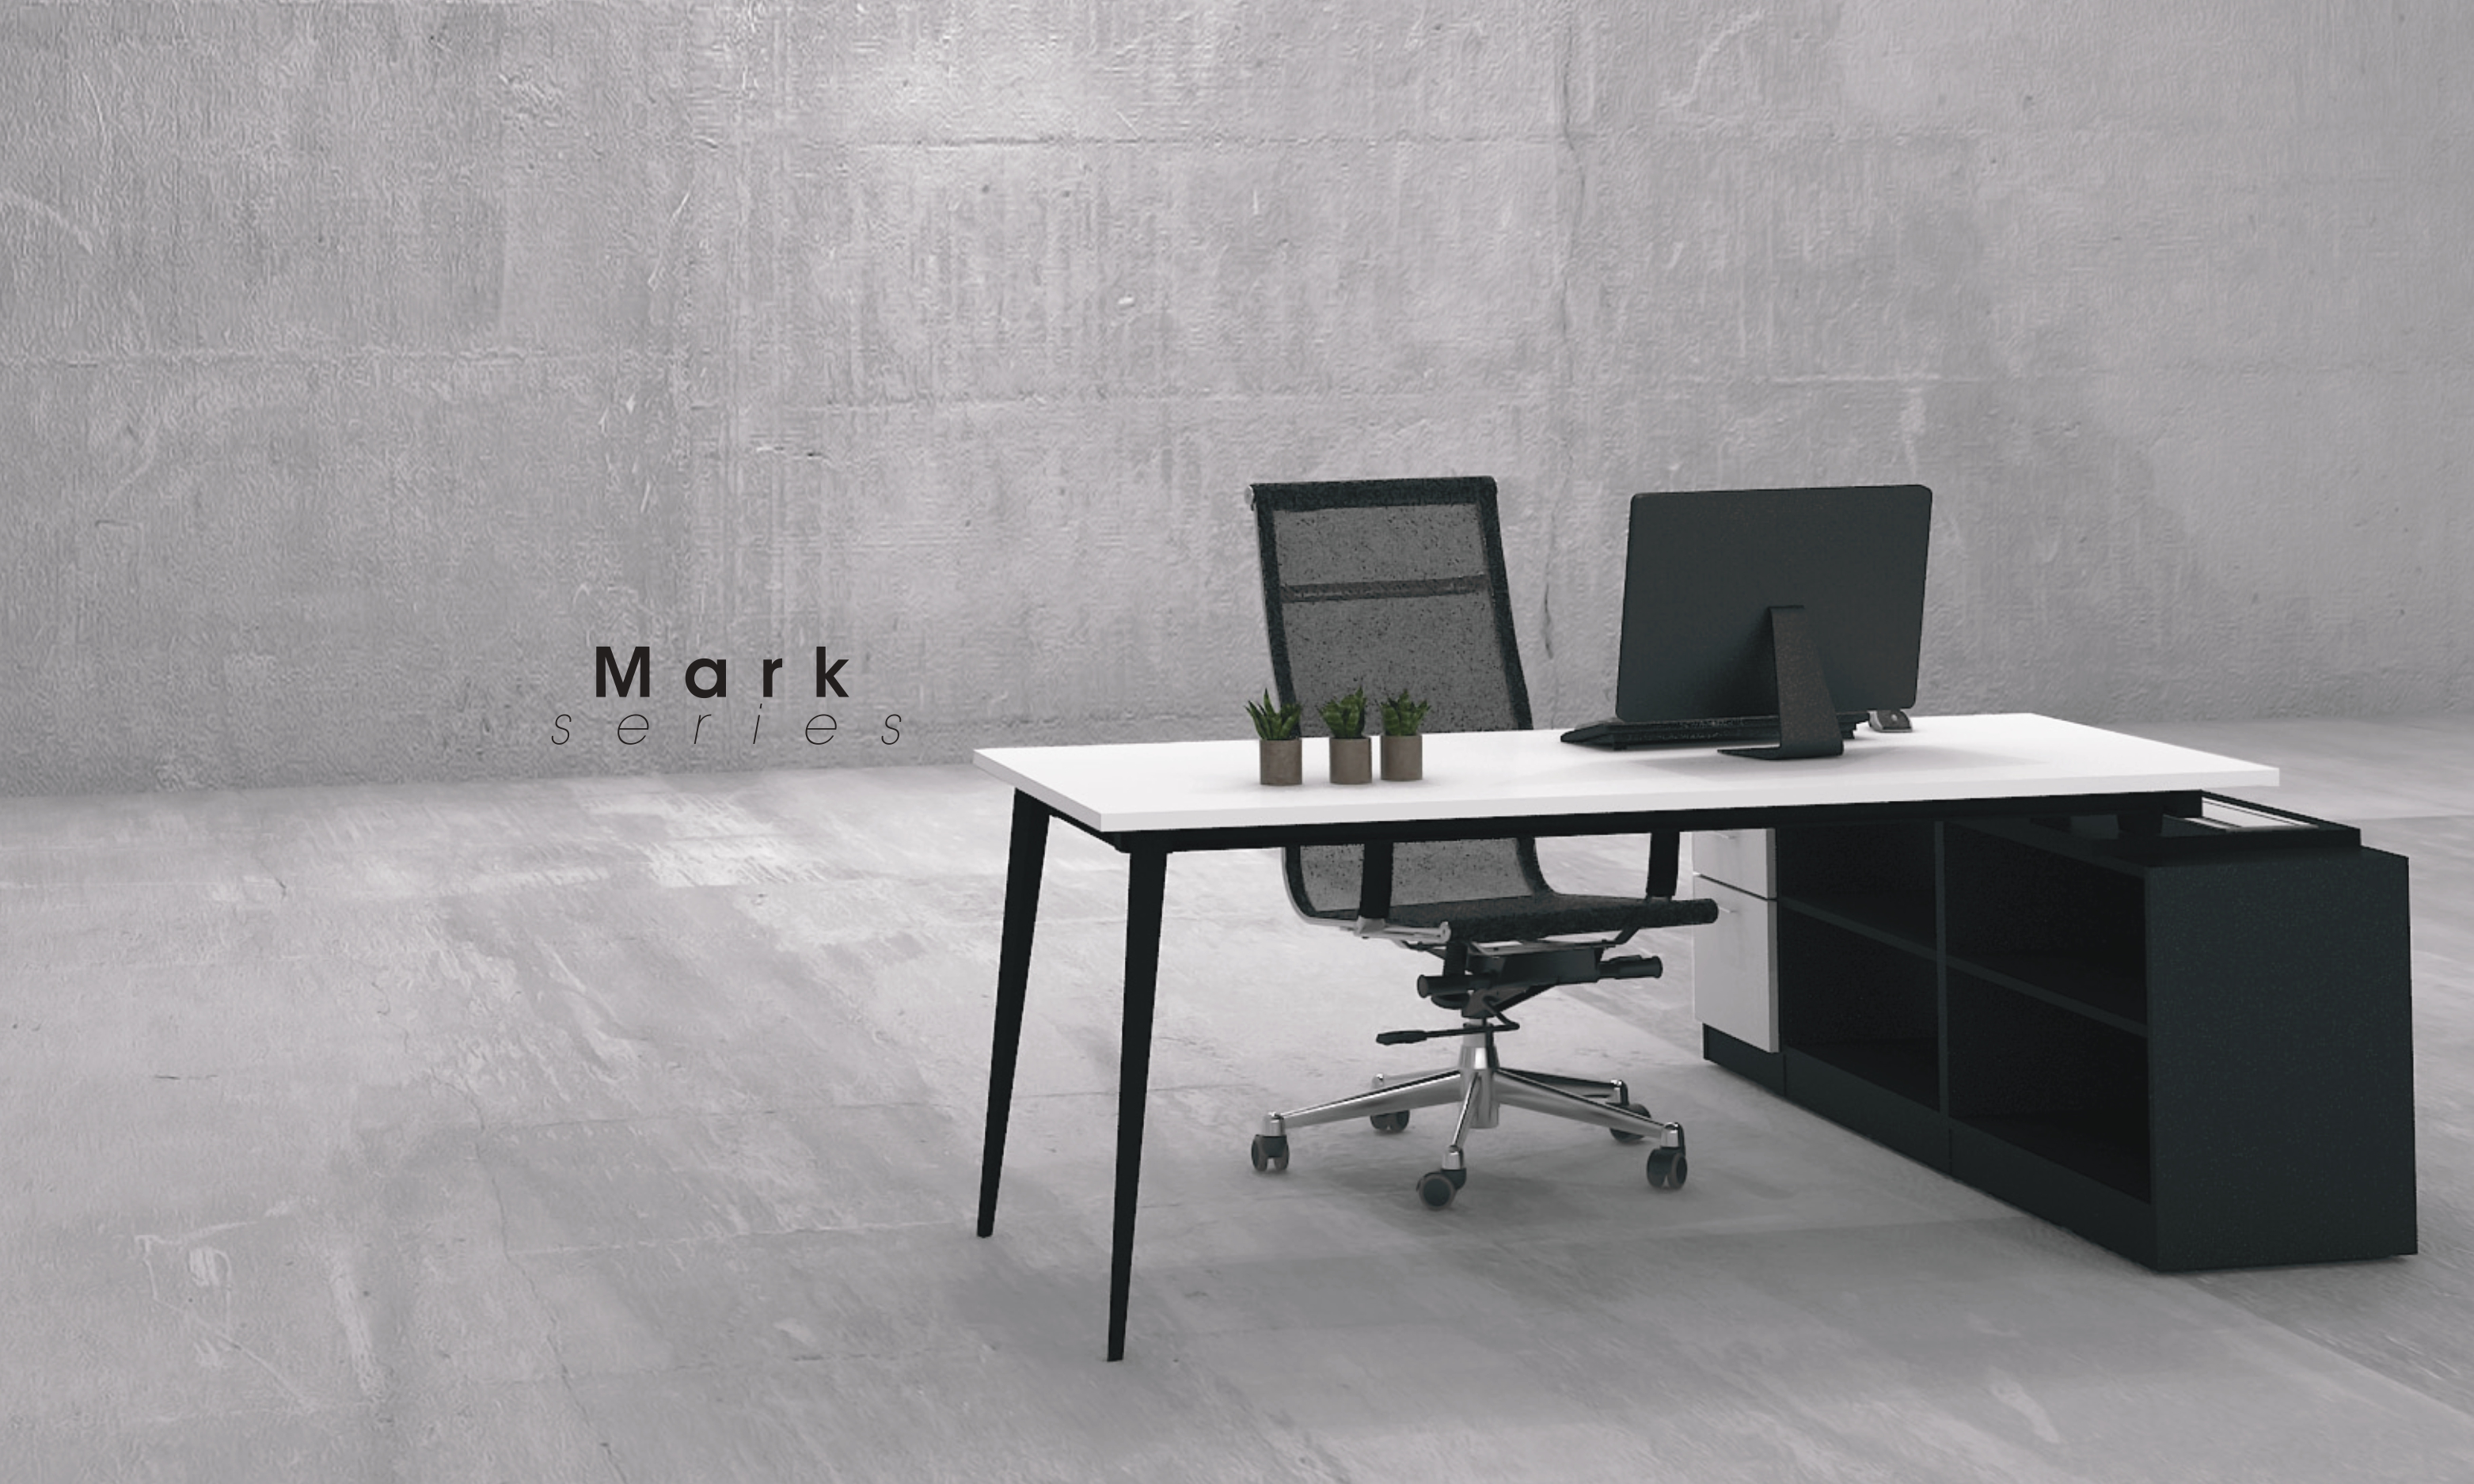 Flexoffice_Product_Markseries_02.jpg